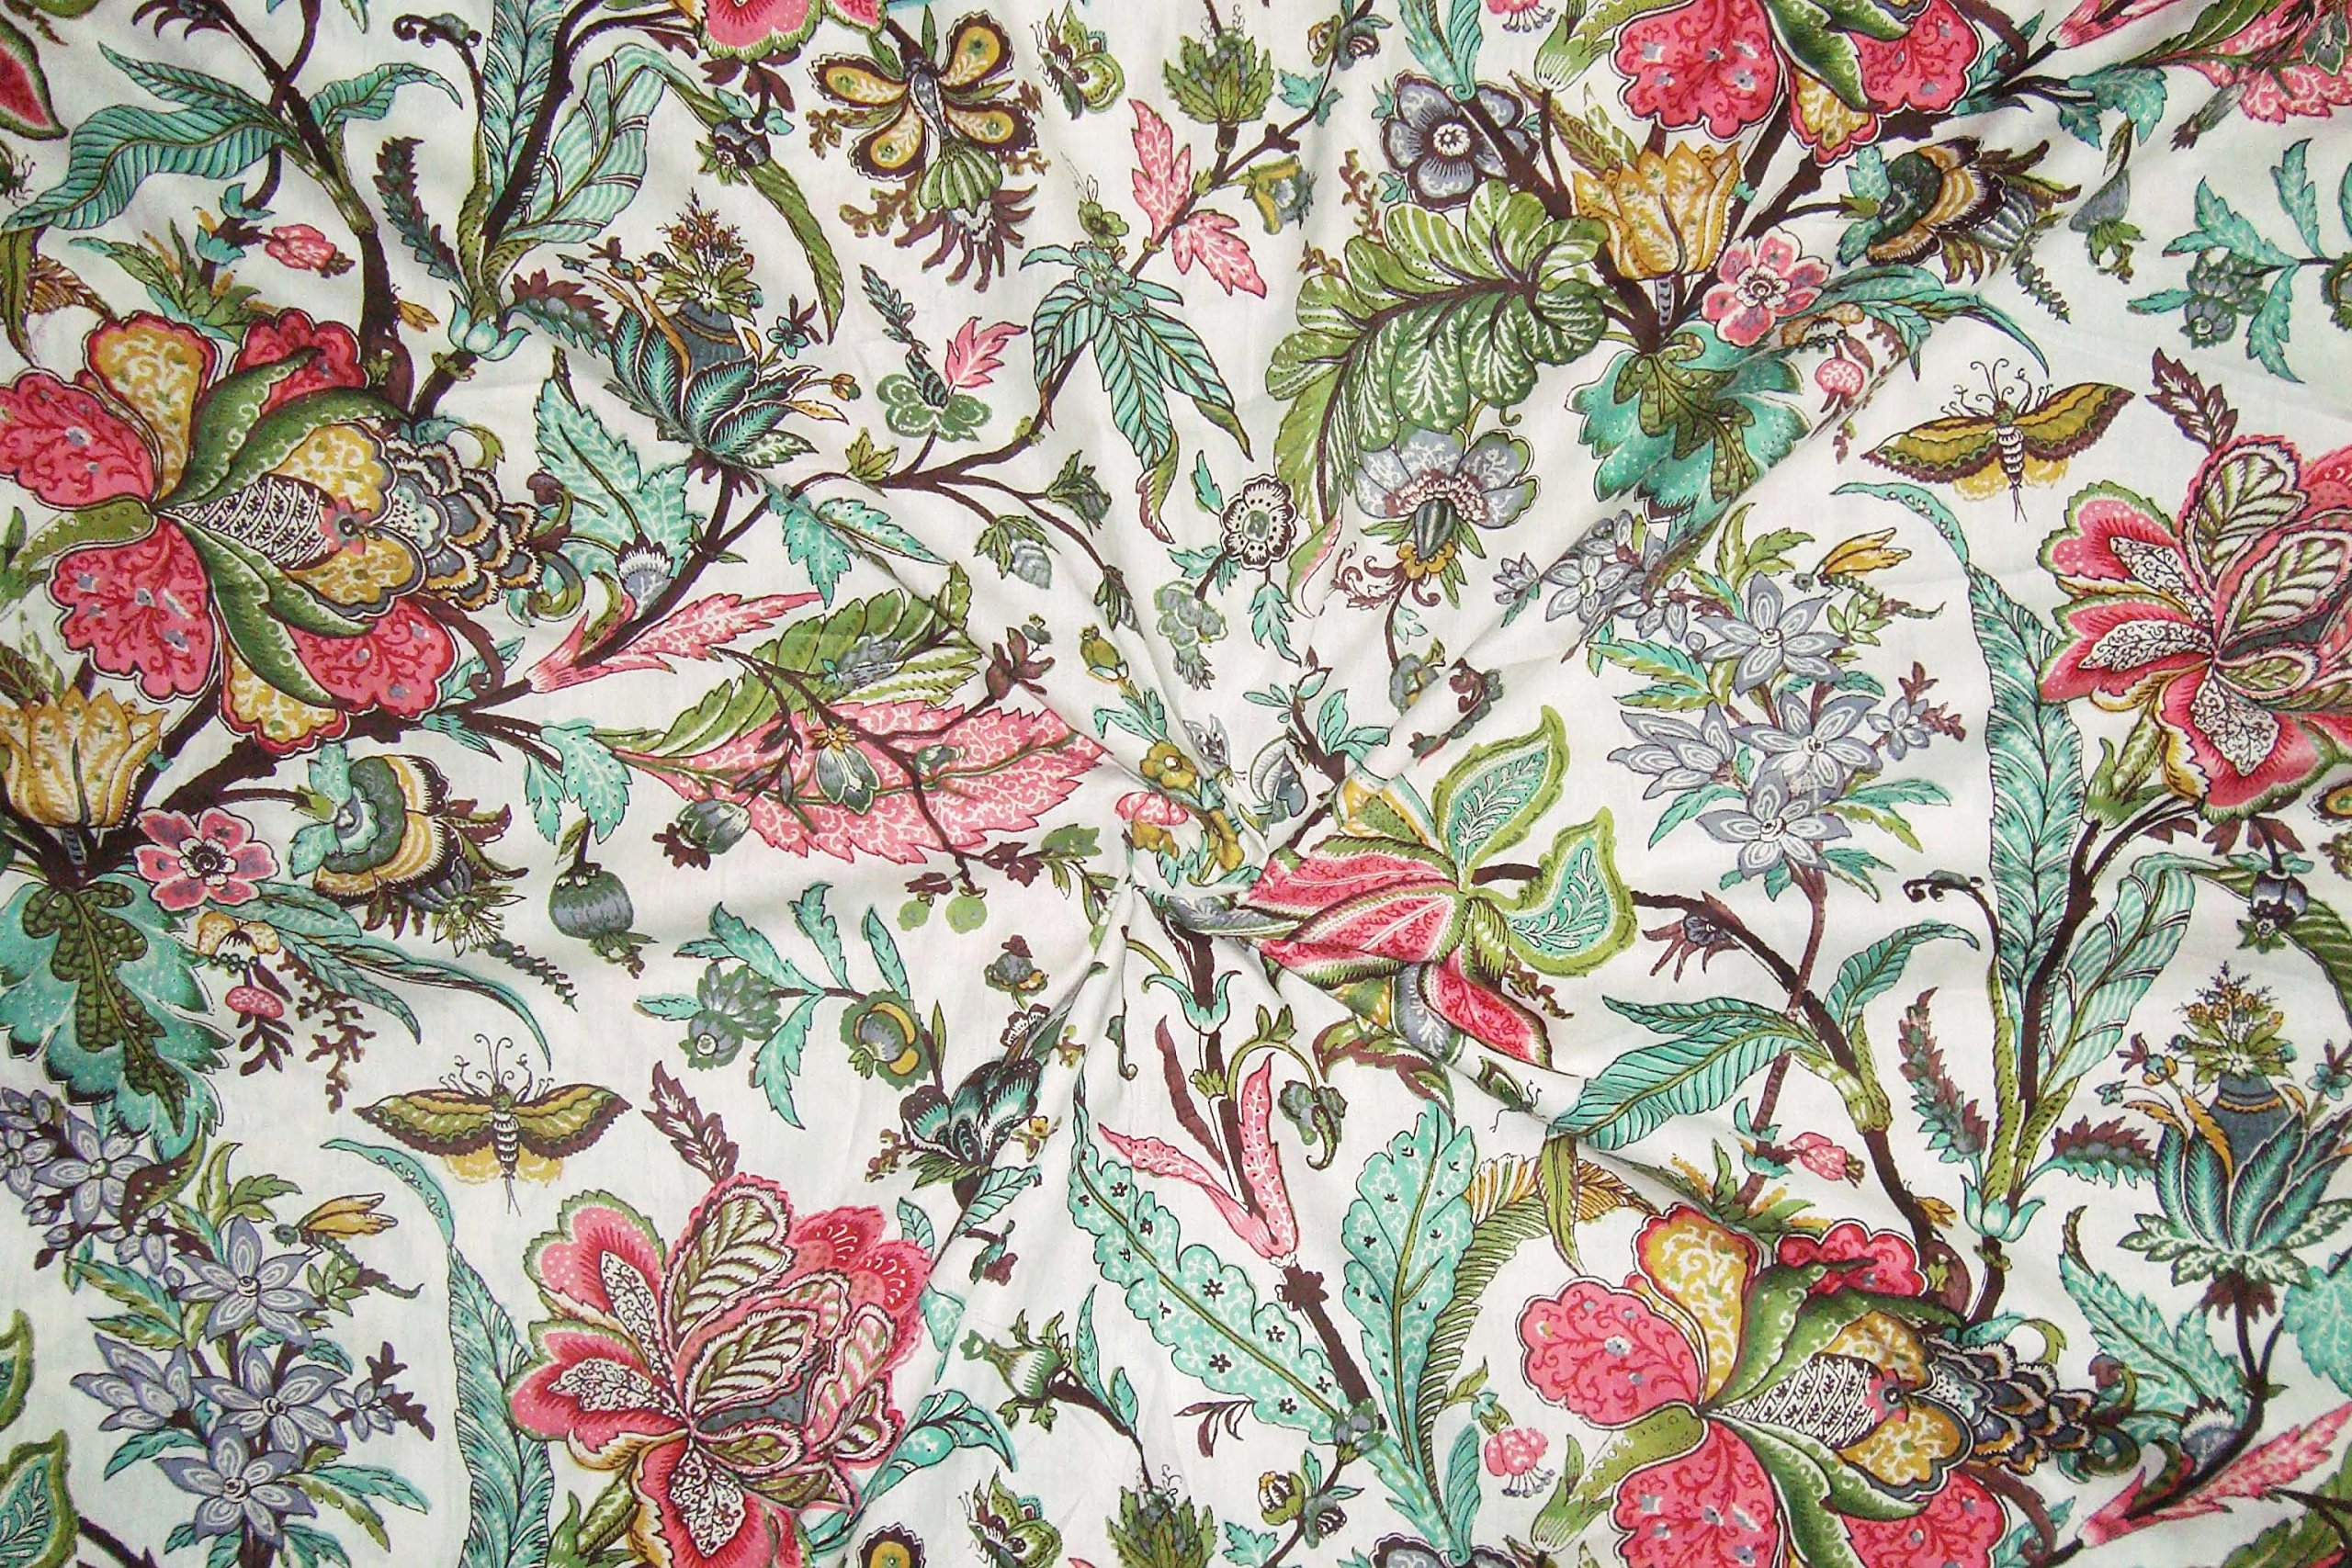 V Vedant Designs Indian Cotton Fabric 5 Yard